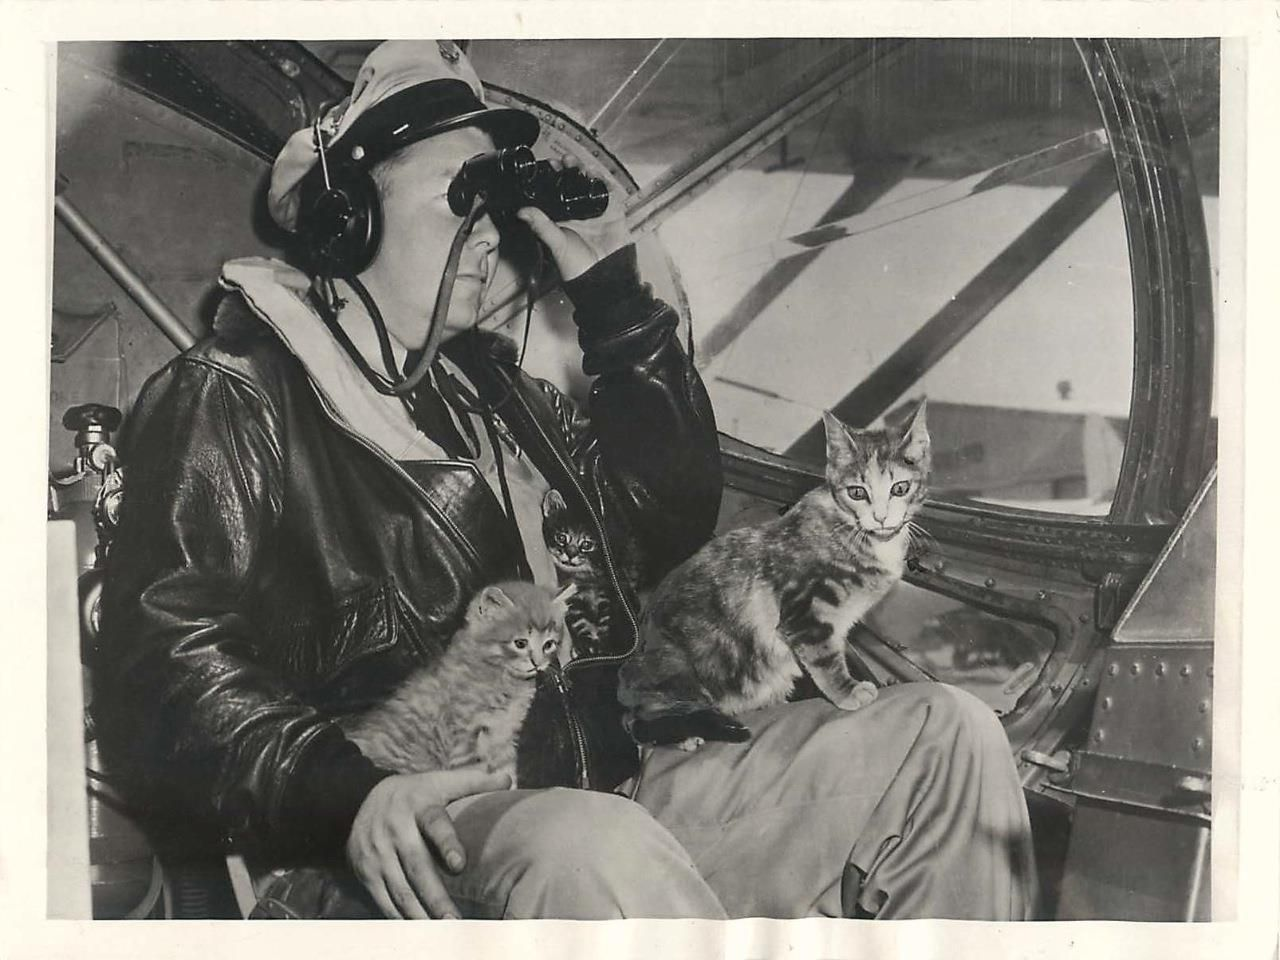 Wwii U S Coast Guard Mascot Cat Salty In Pby During Rescue Mission Press Photo National Cat Day Work With Animals Dog Stories